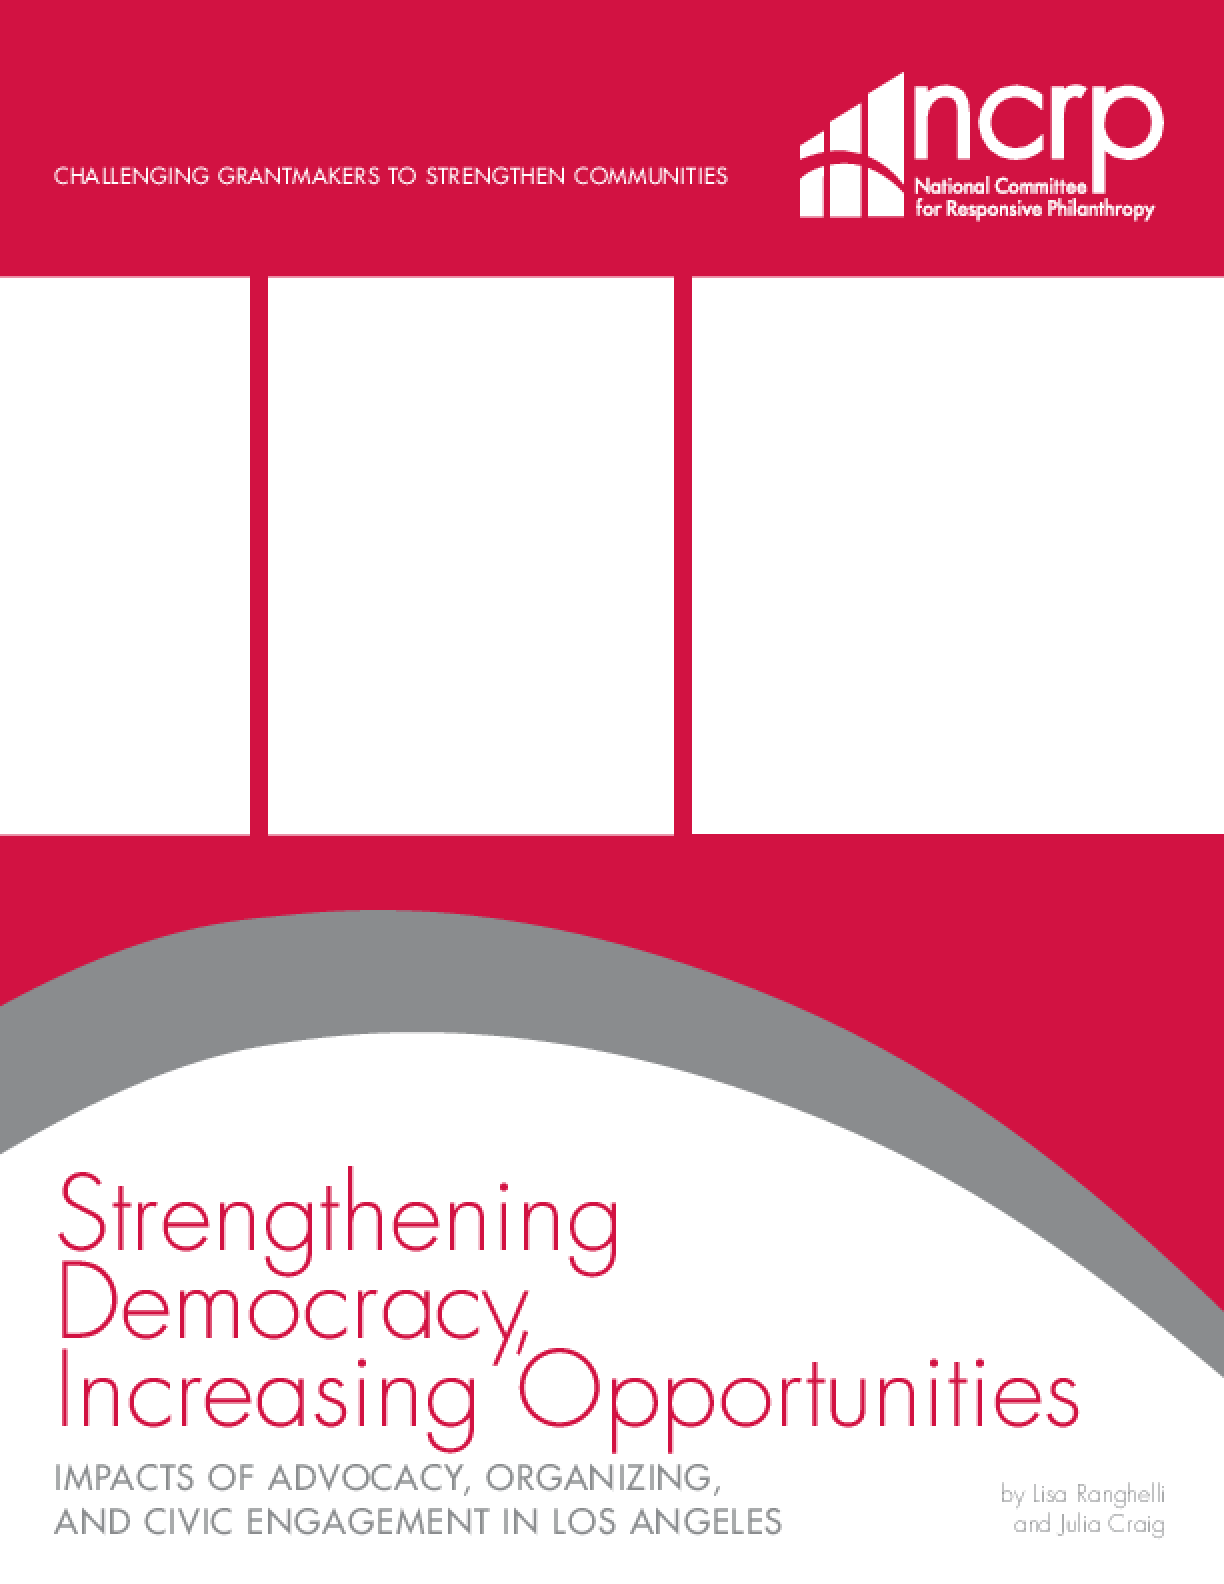 Strengthening Democracy, Increasing Opportunities: Impacts of Advocacy, Organizing, and Civic Engagement in Los Angeles